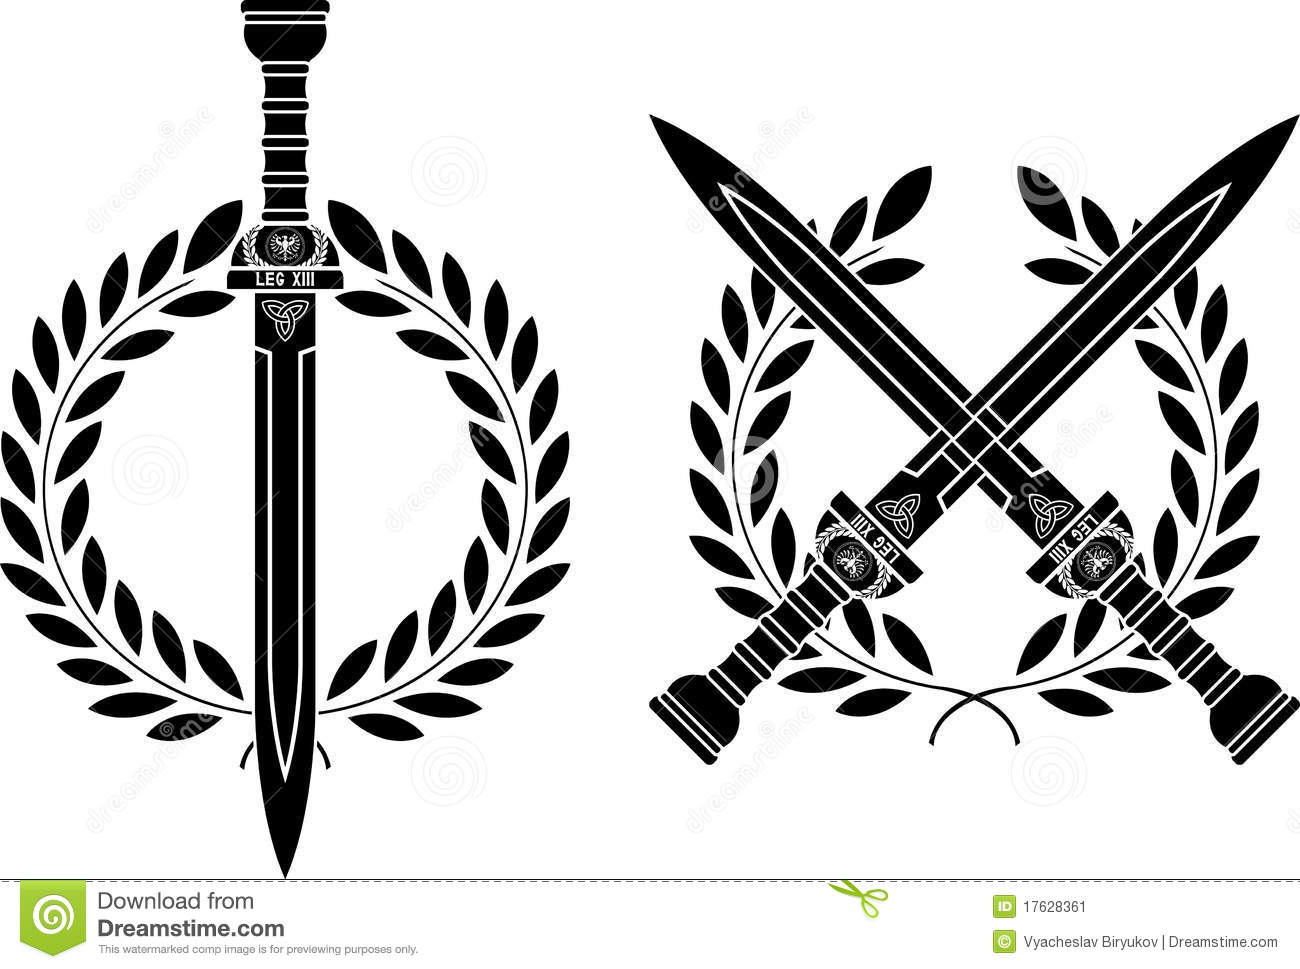 Roman Swords And Wreath Stock Vector Illustration Of Creativity